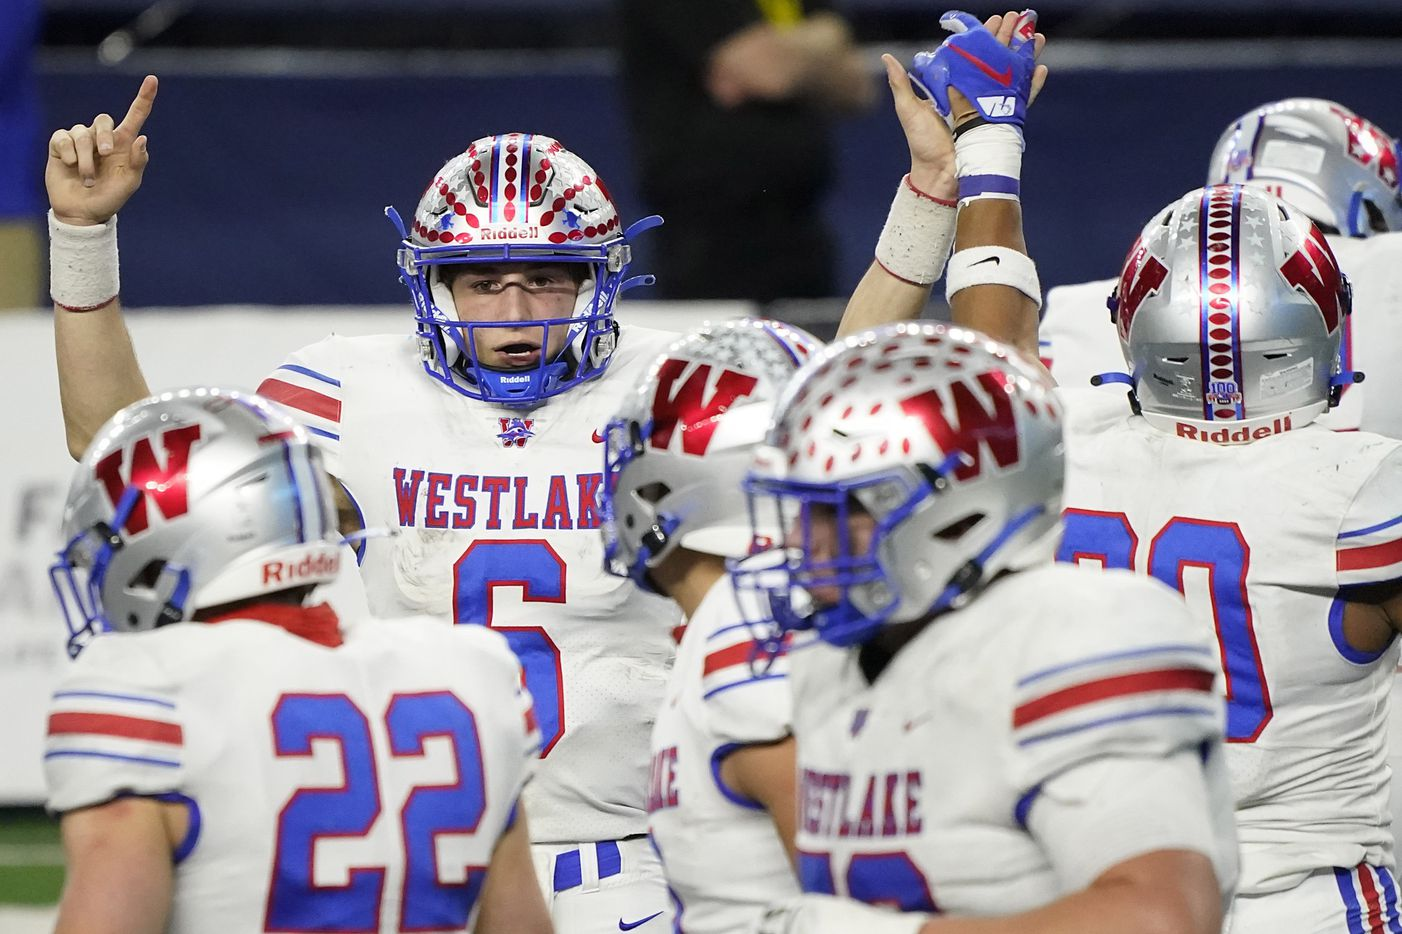 Austin Westlake quarterback Cade Klubnik (6) celebrates a touchdown run by running back Grey Nakfoor (22) during the fourth quarter of the Class 6A Division I state football championship game against Southlake Carroll at AT&T Stadium on Saturday, Jan. 16, 2021, in Arlington, Texas. Westlake won the game 52-34.